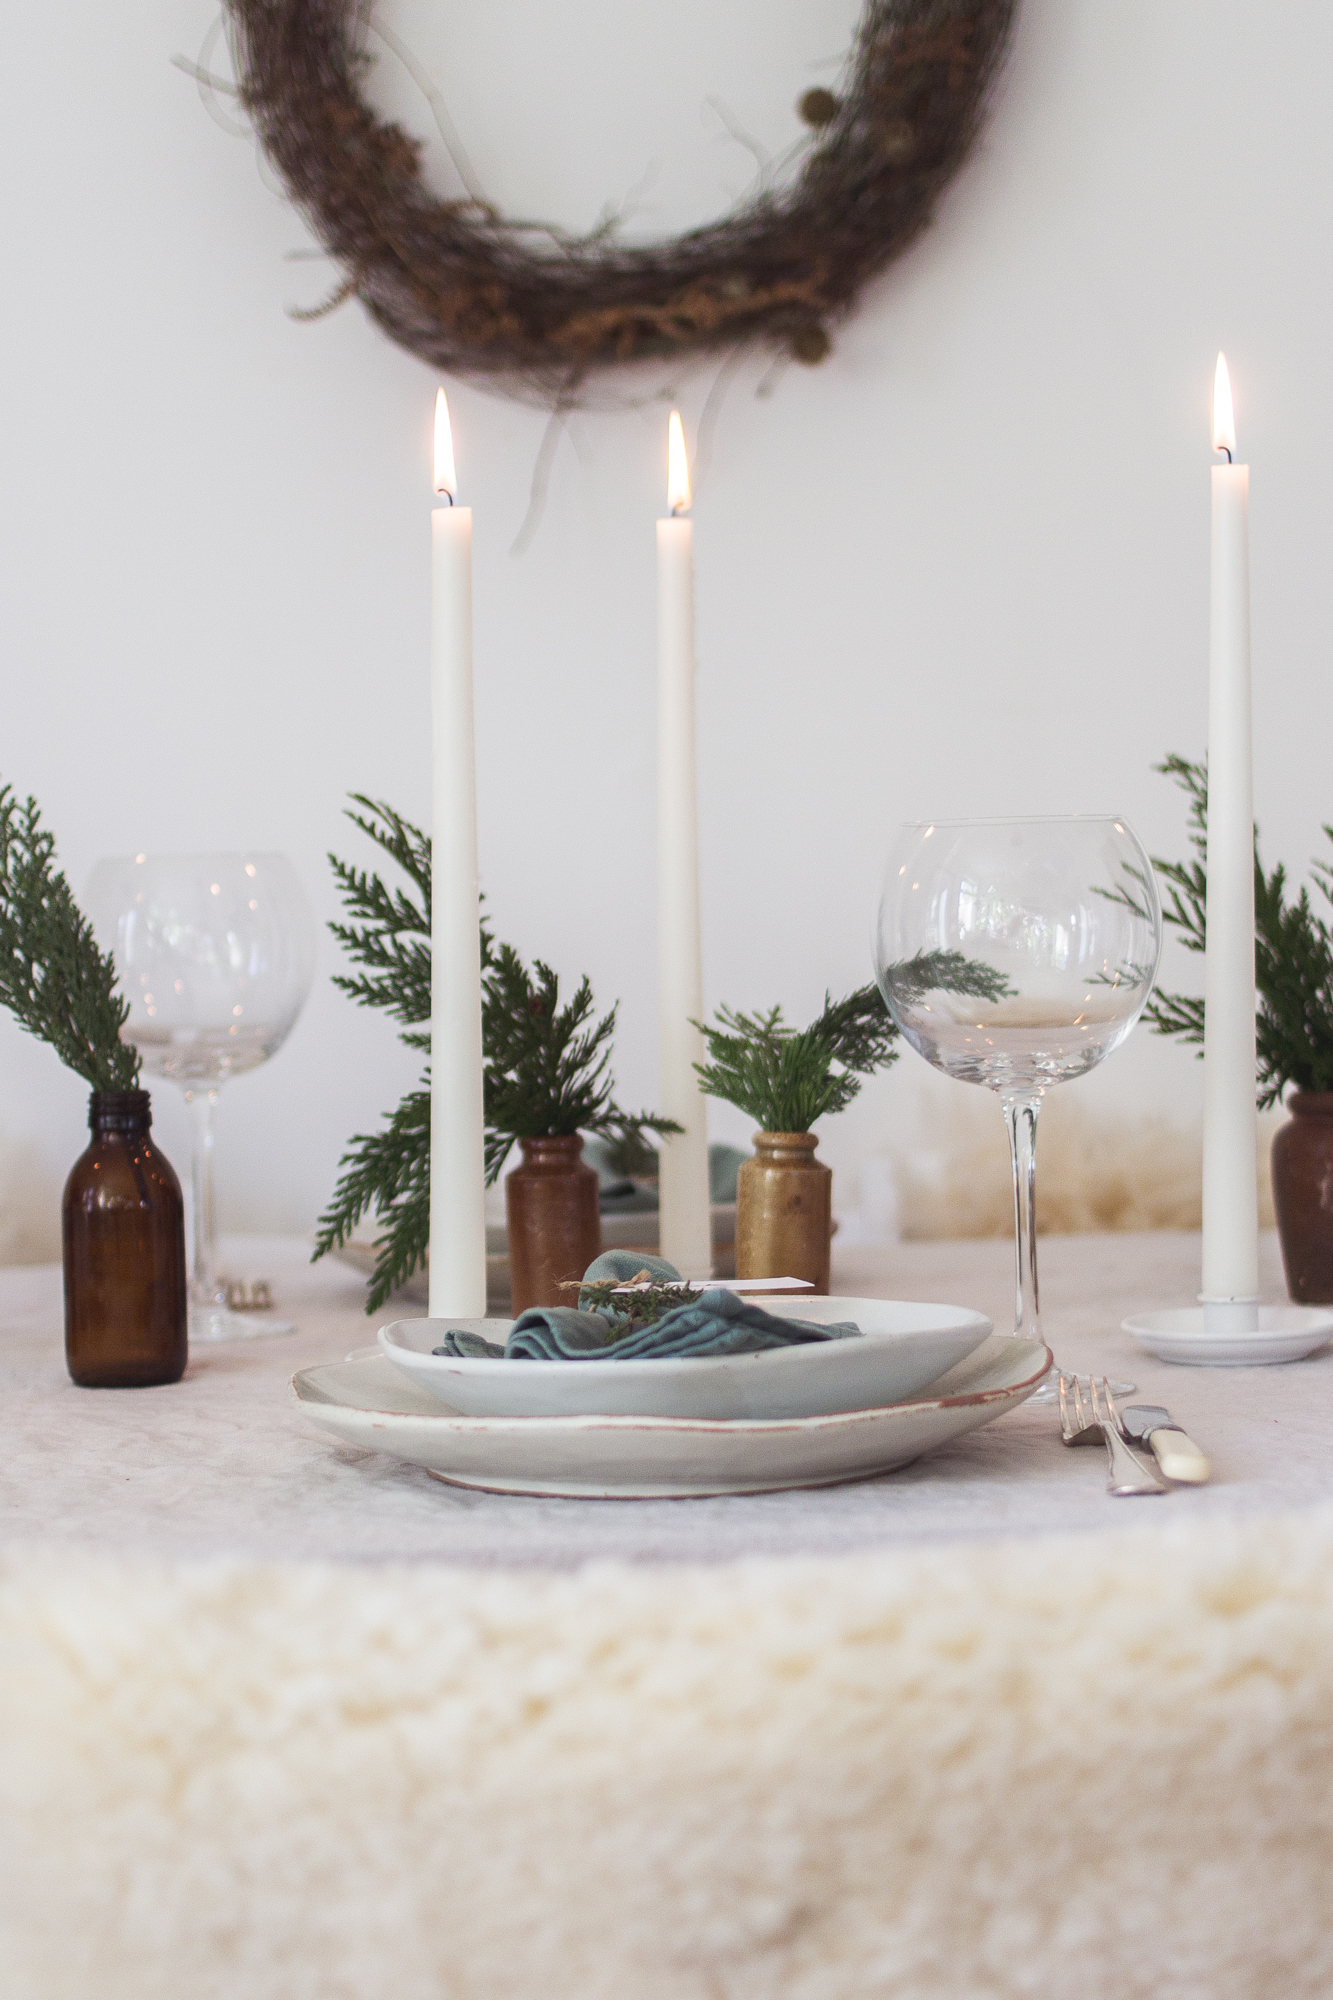 Laying a simple festive table | Seeds and Stitches blog